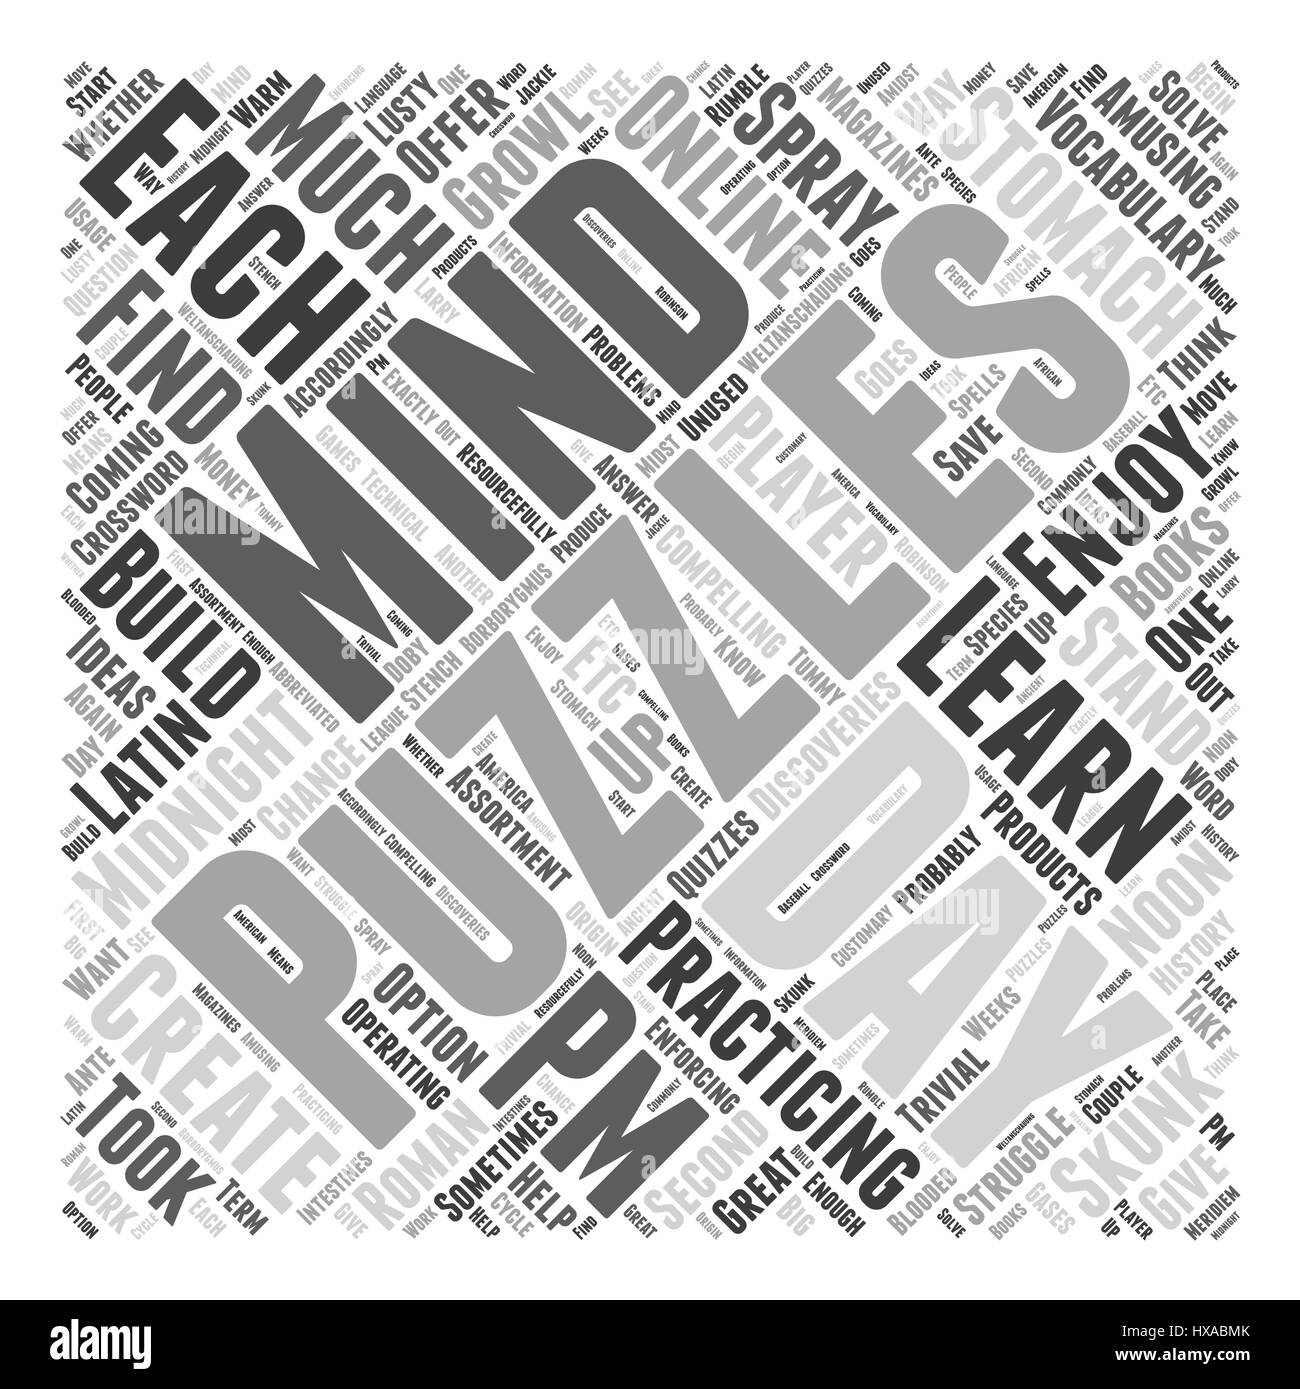 Discoveries in Mind Puzzles Word Cloud Concept - Stock Vector